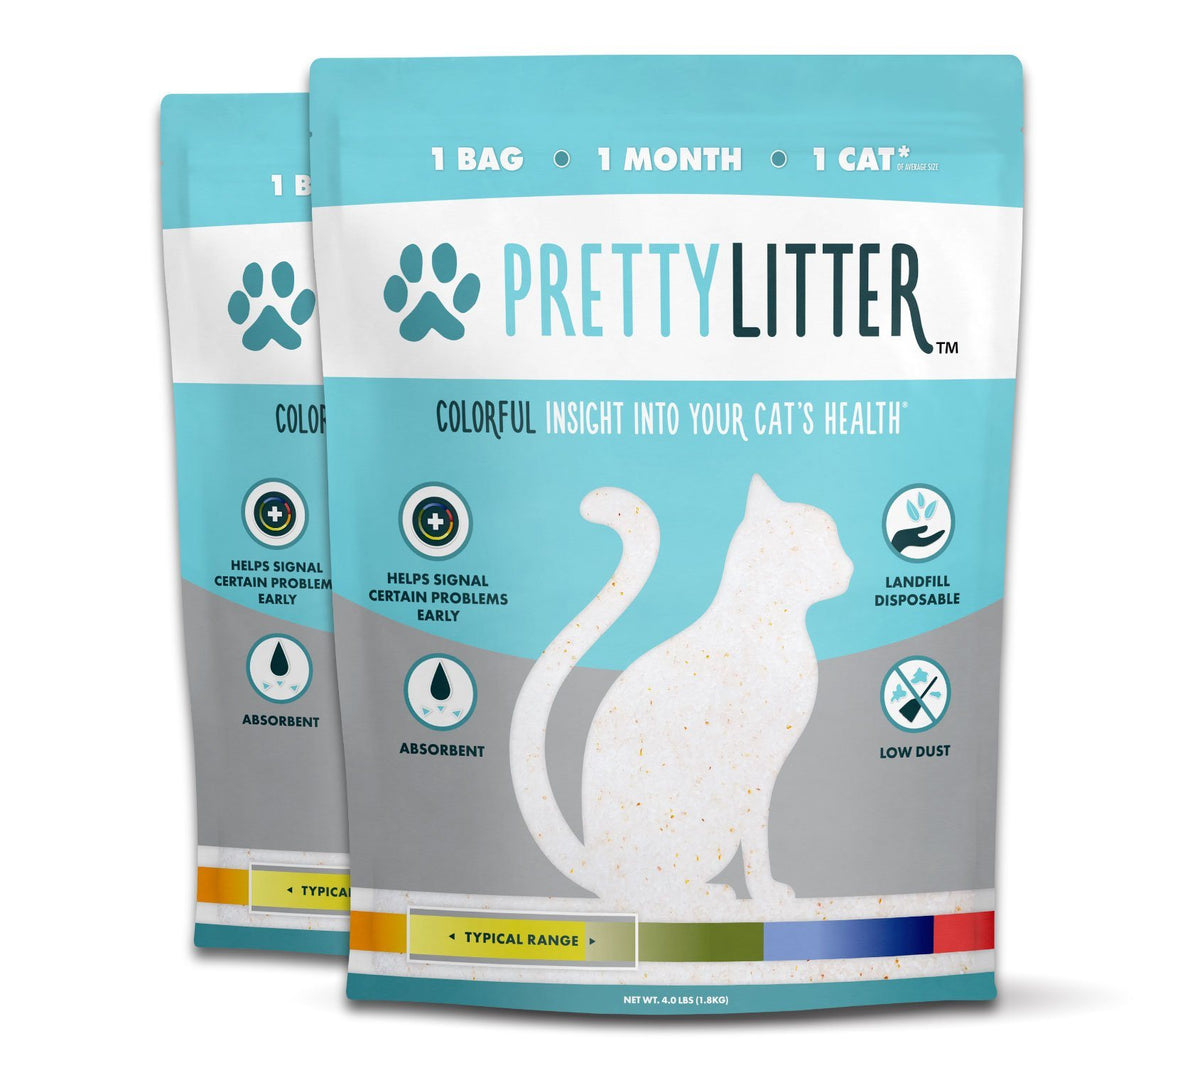 Two Bags of Pretty Litter™ Health Monitoring Cat Litter - PrettyLitter